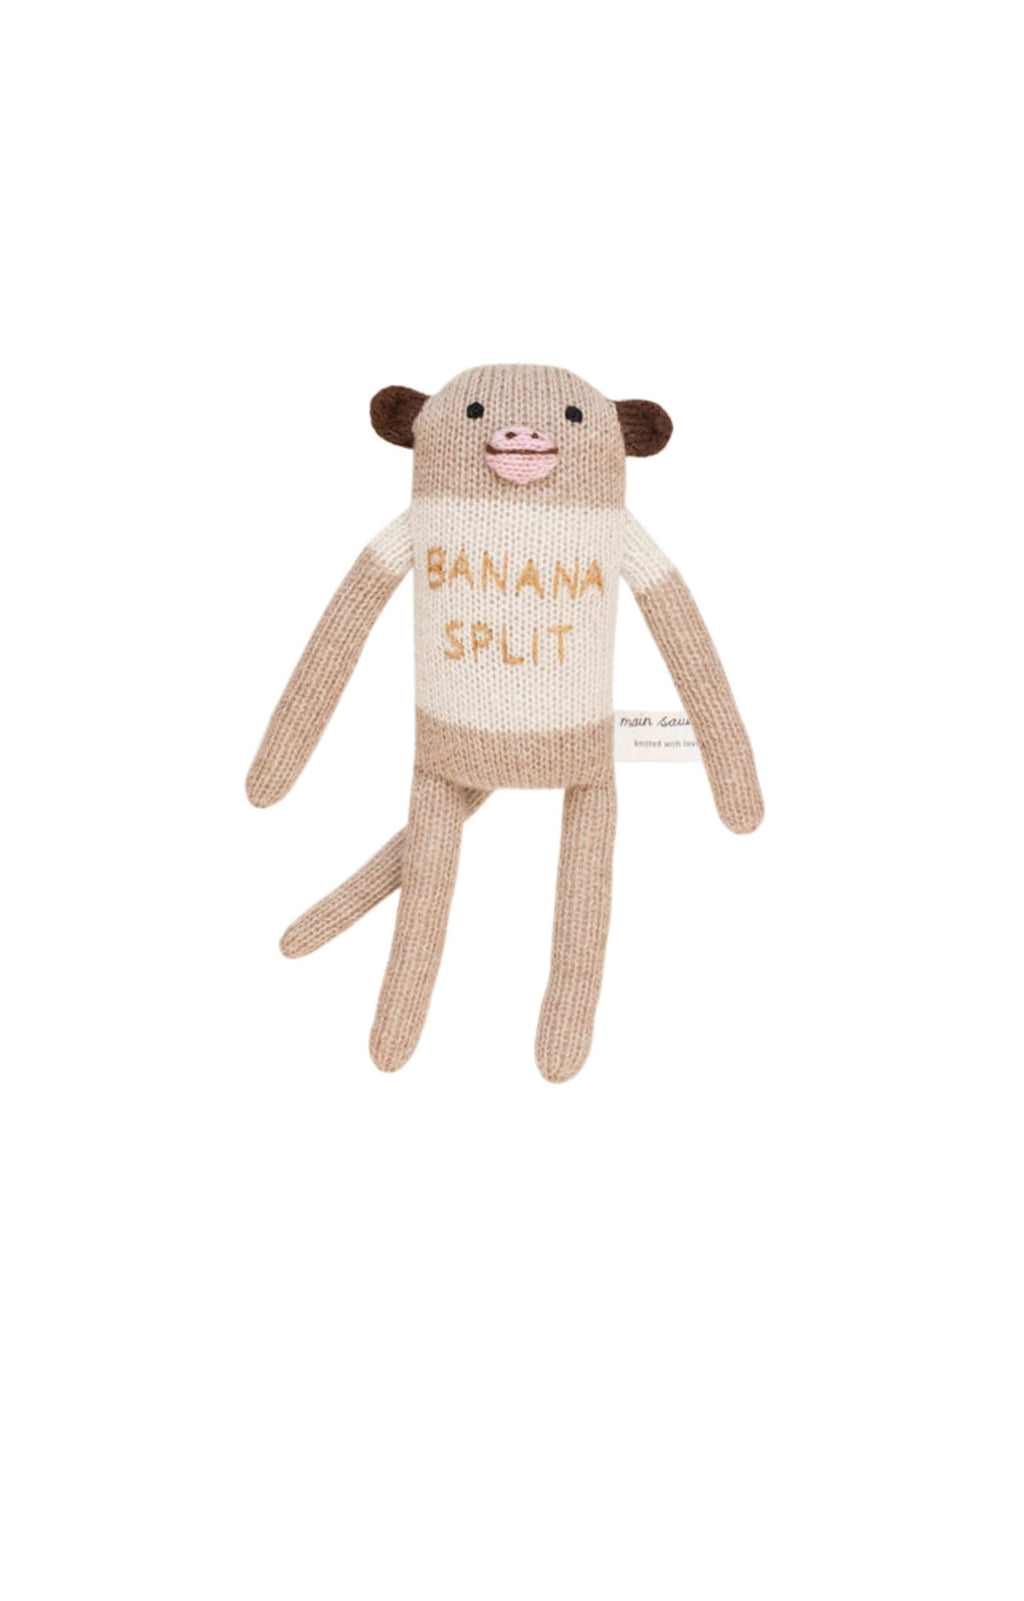 "Main Sauvage ""banana split"" monkey knit toy - Hello Little Birdie"